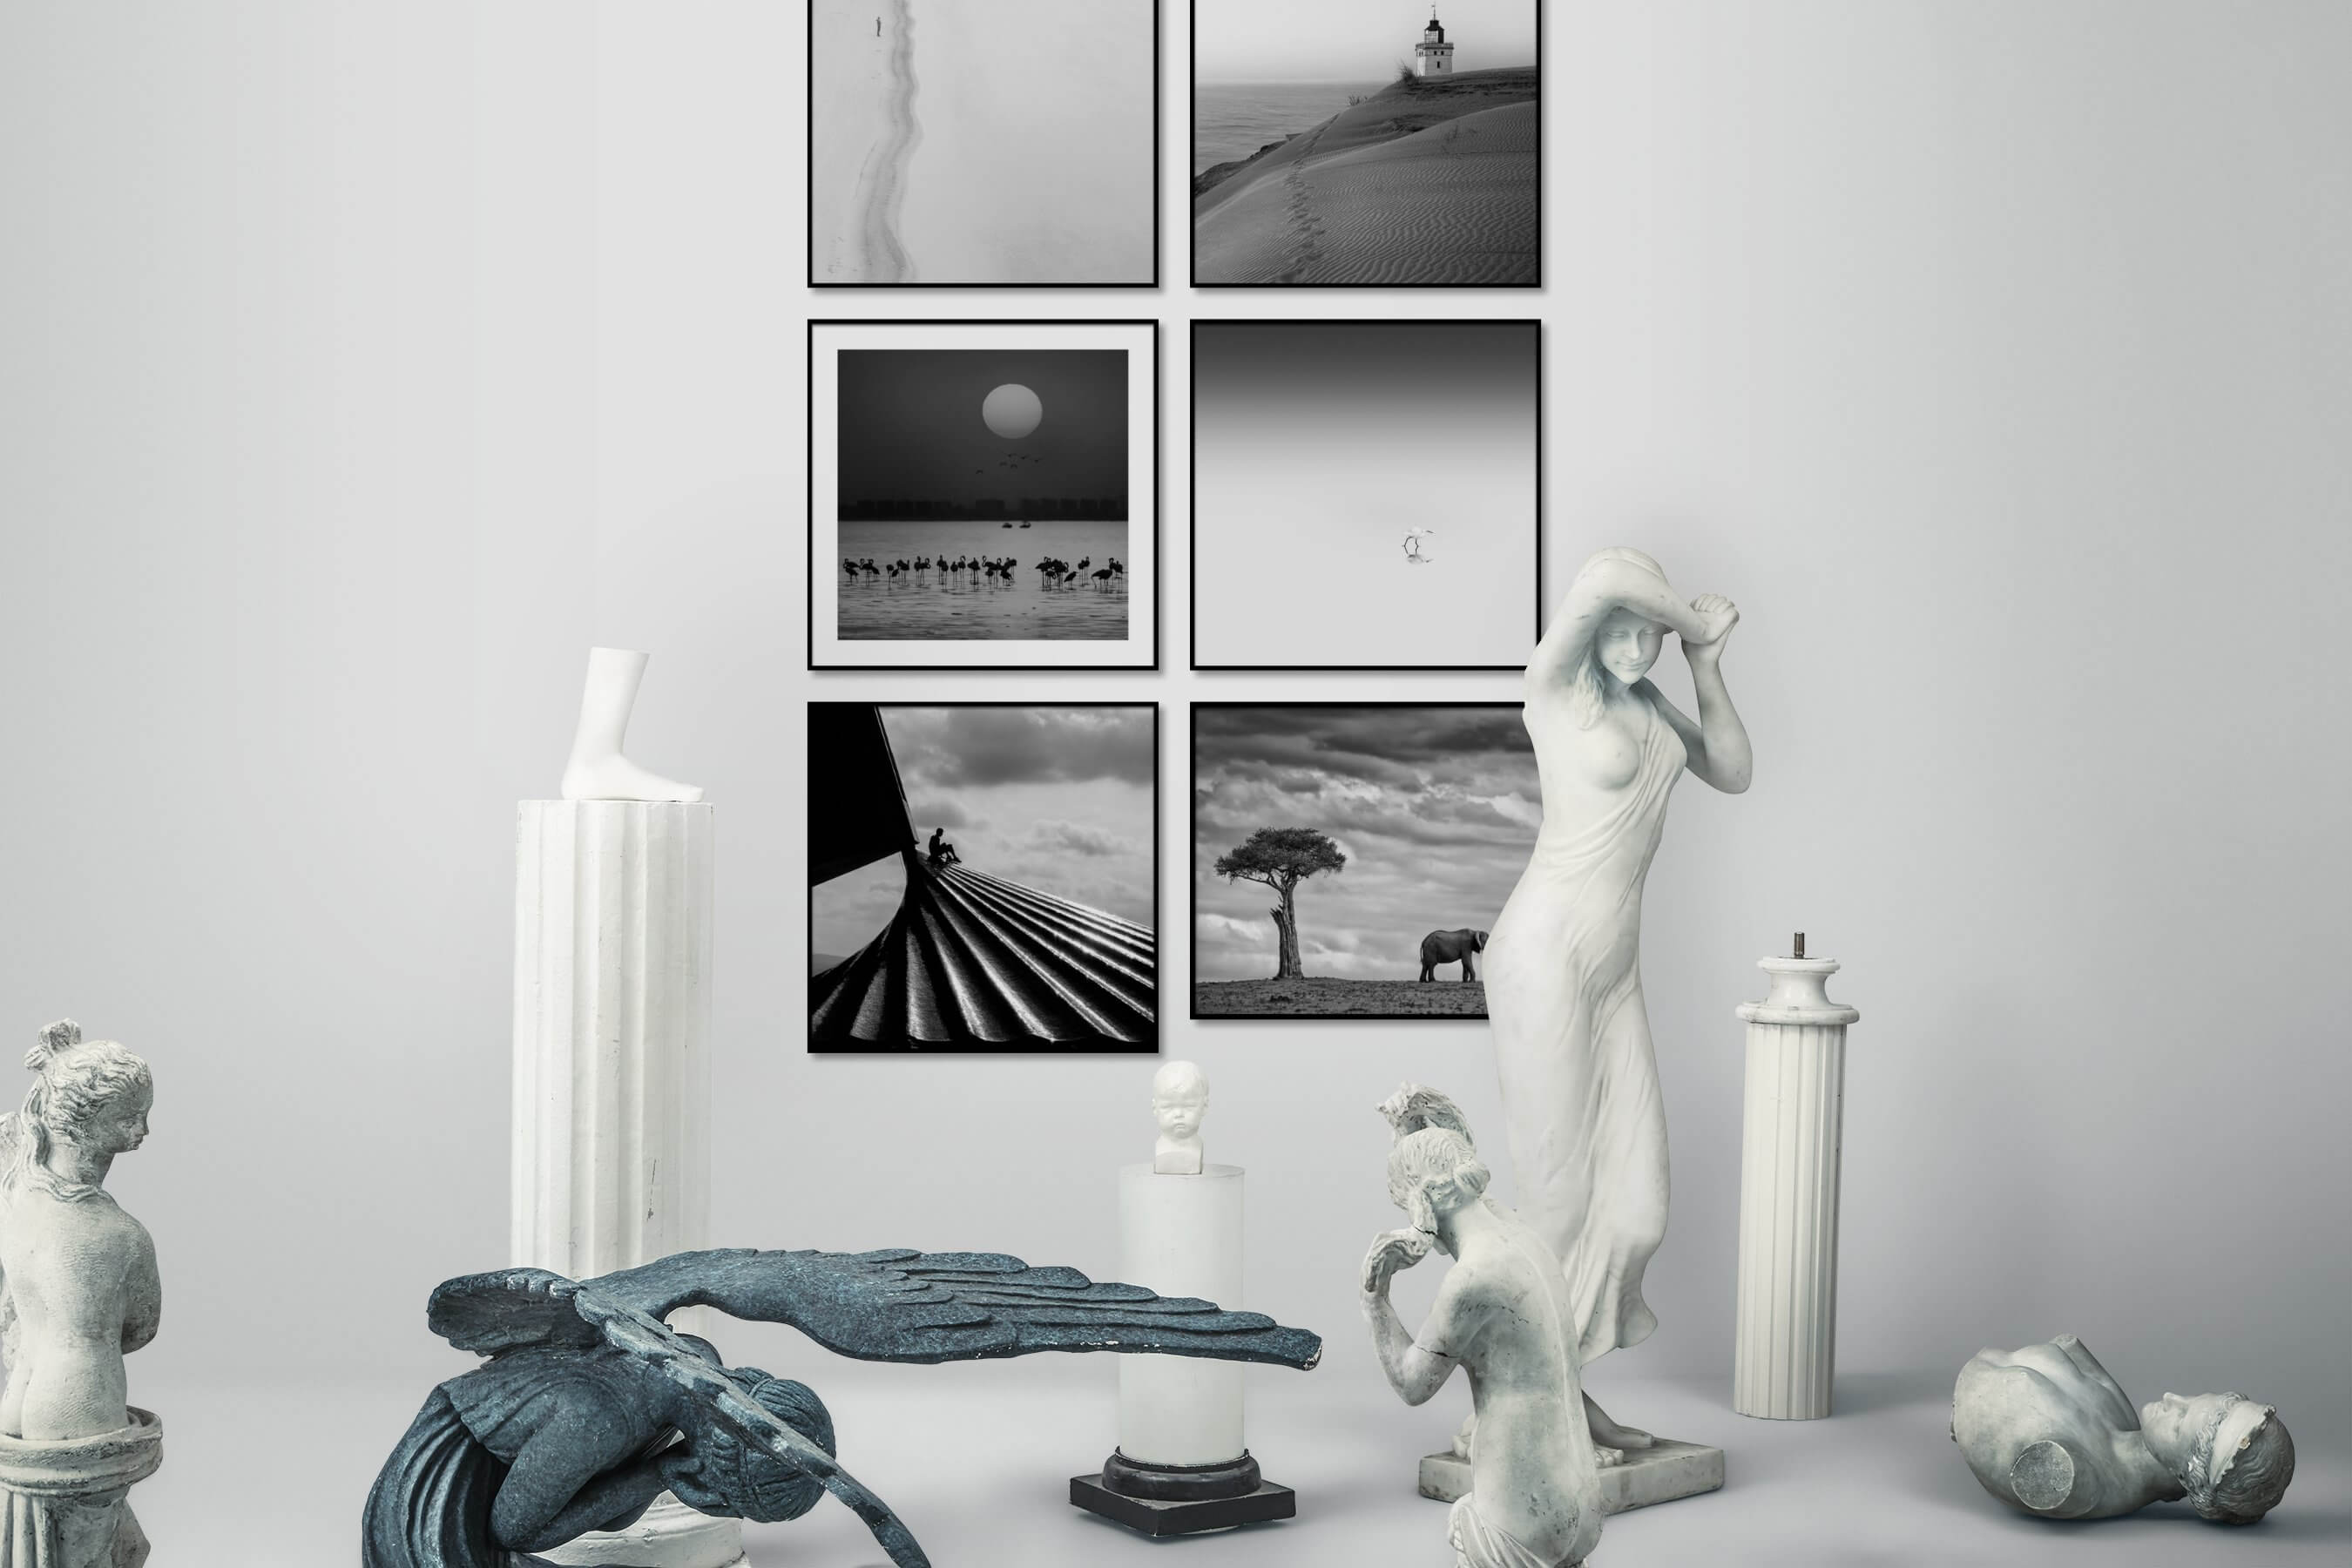 Gallery wall idea with six framed pictures arranged on a wall depicting Black & White, Beach & Water, Mindfulness, Animals, For the Minimalist, and For the Moderate